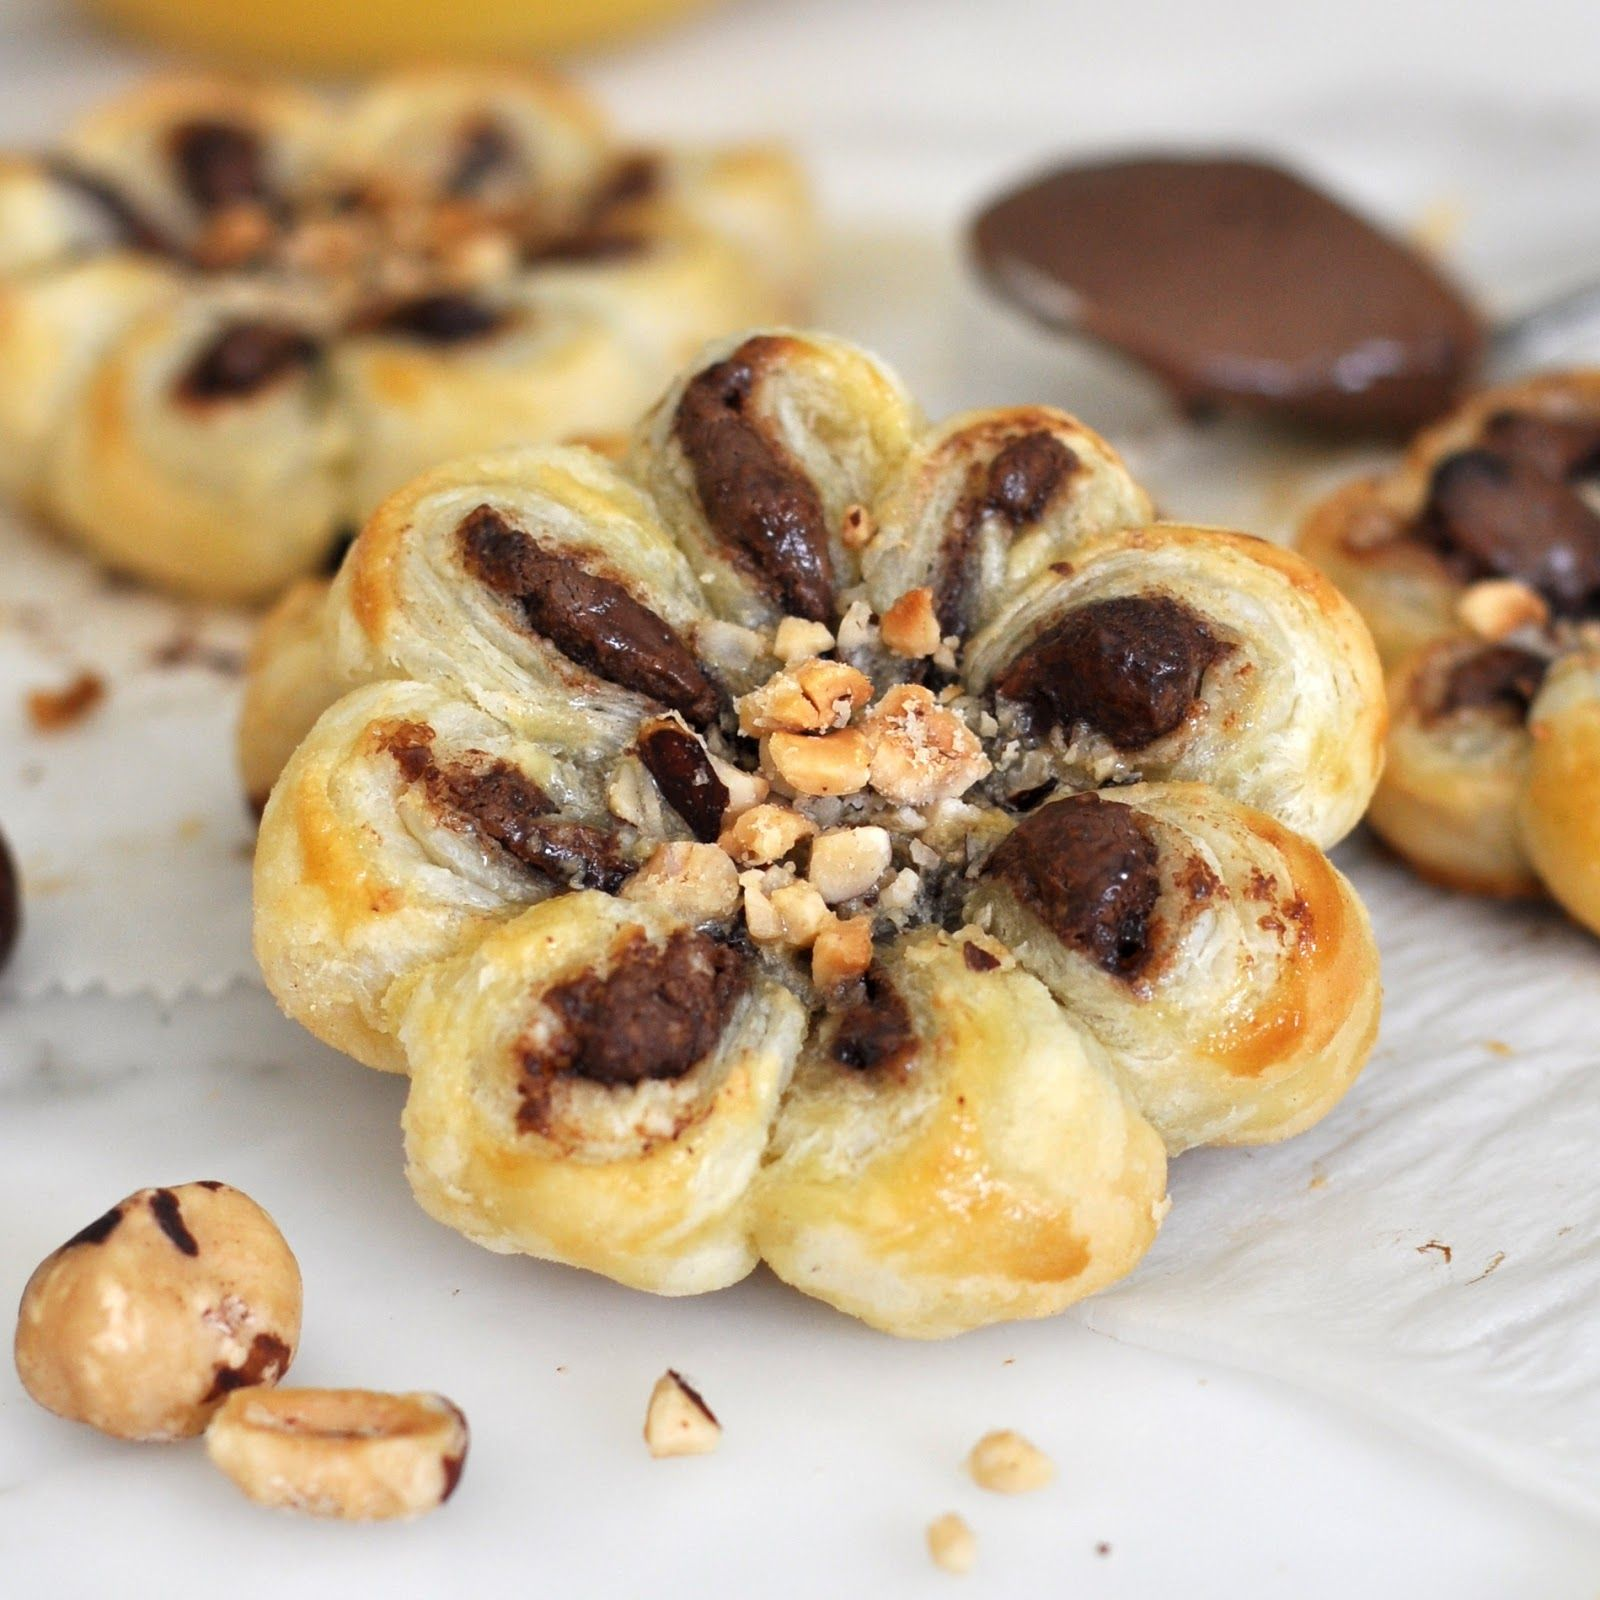 How to make puff pastry chocolate hazelnut flowers pinterest a blog about italian food quick and easy recipes cooking experiences and tips visit my blog get inspired and creative forumfinder Gallery